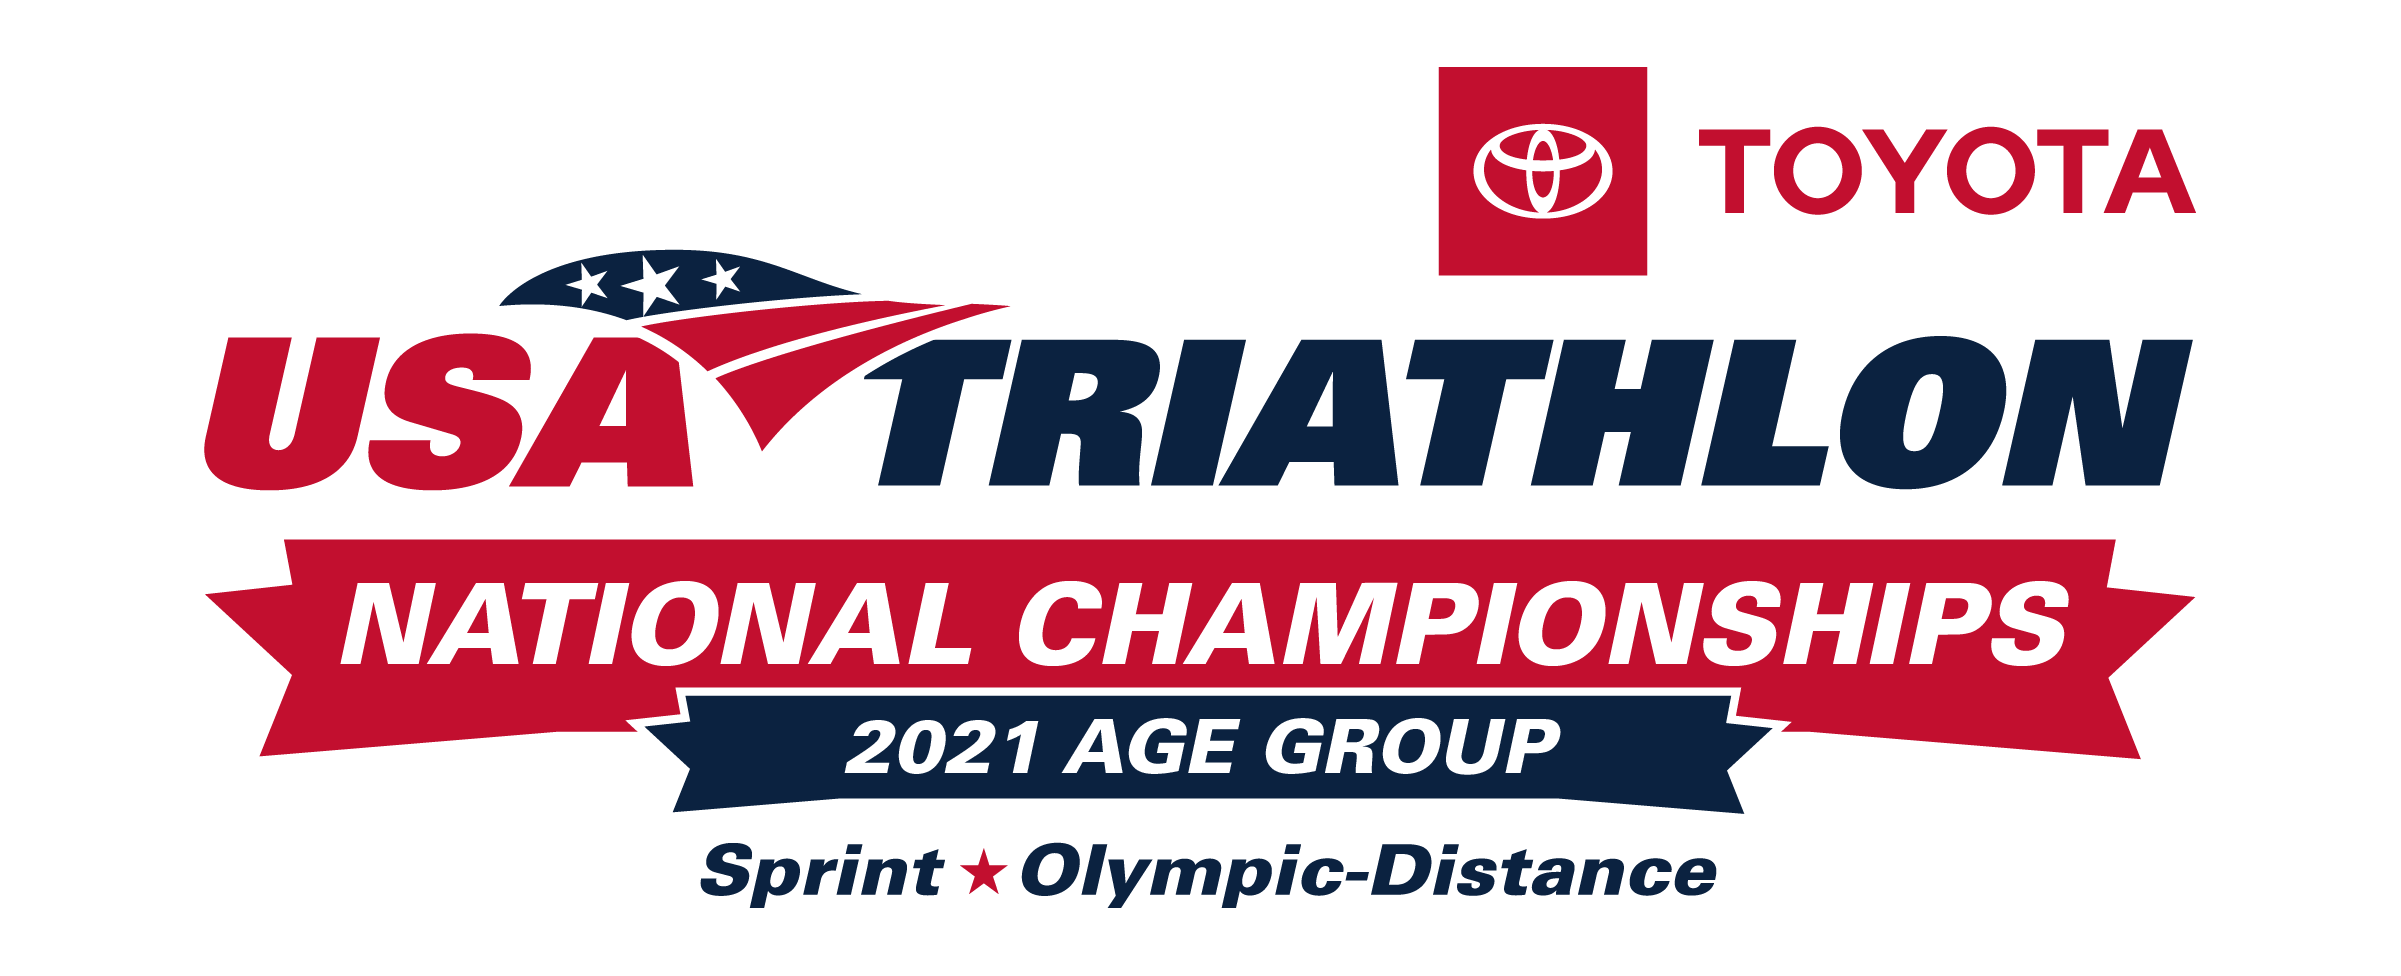 2021 Toyota Age Group National Championships - Open Waves, Open Water Swim, VIP Packages